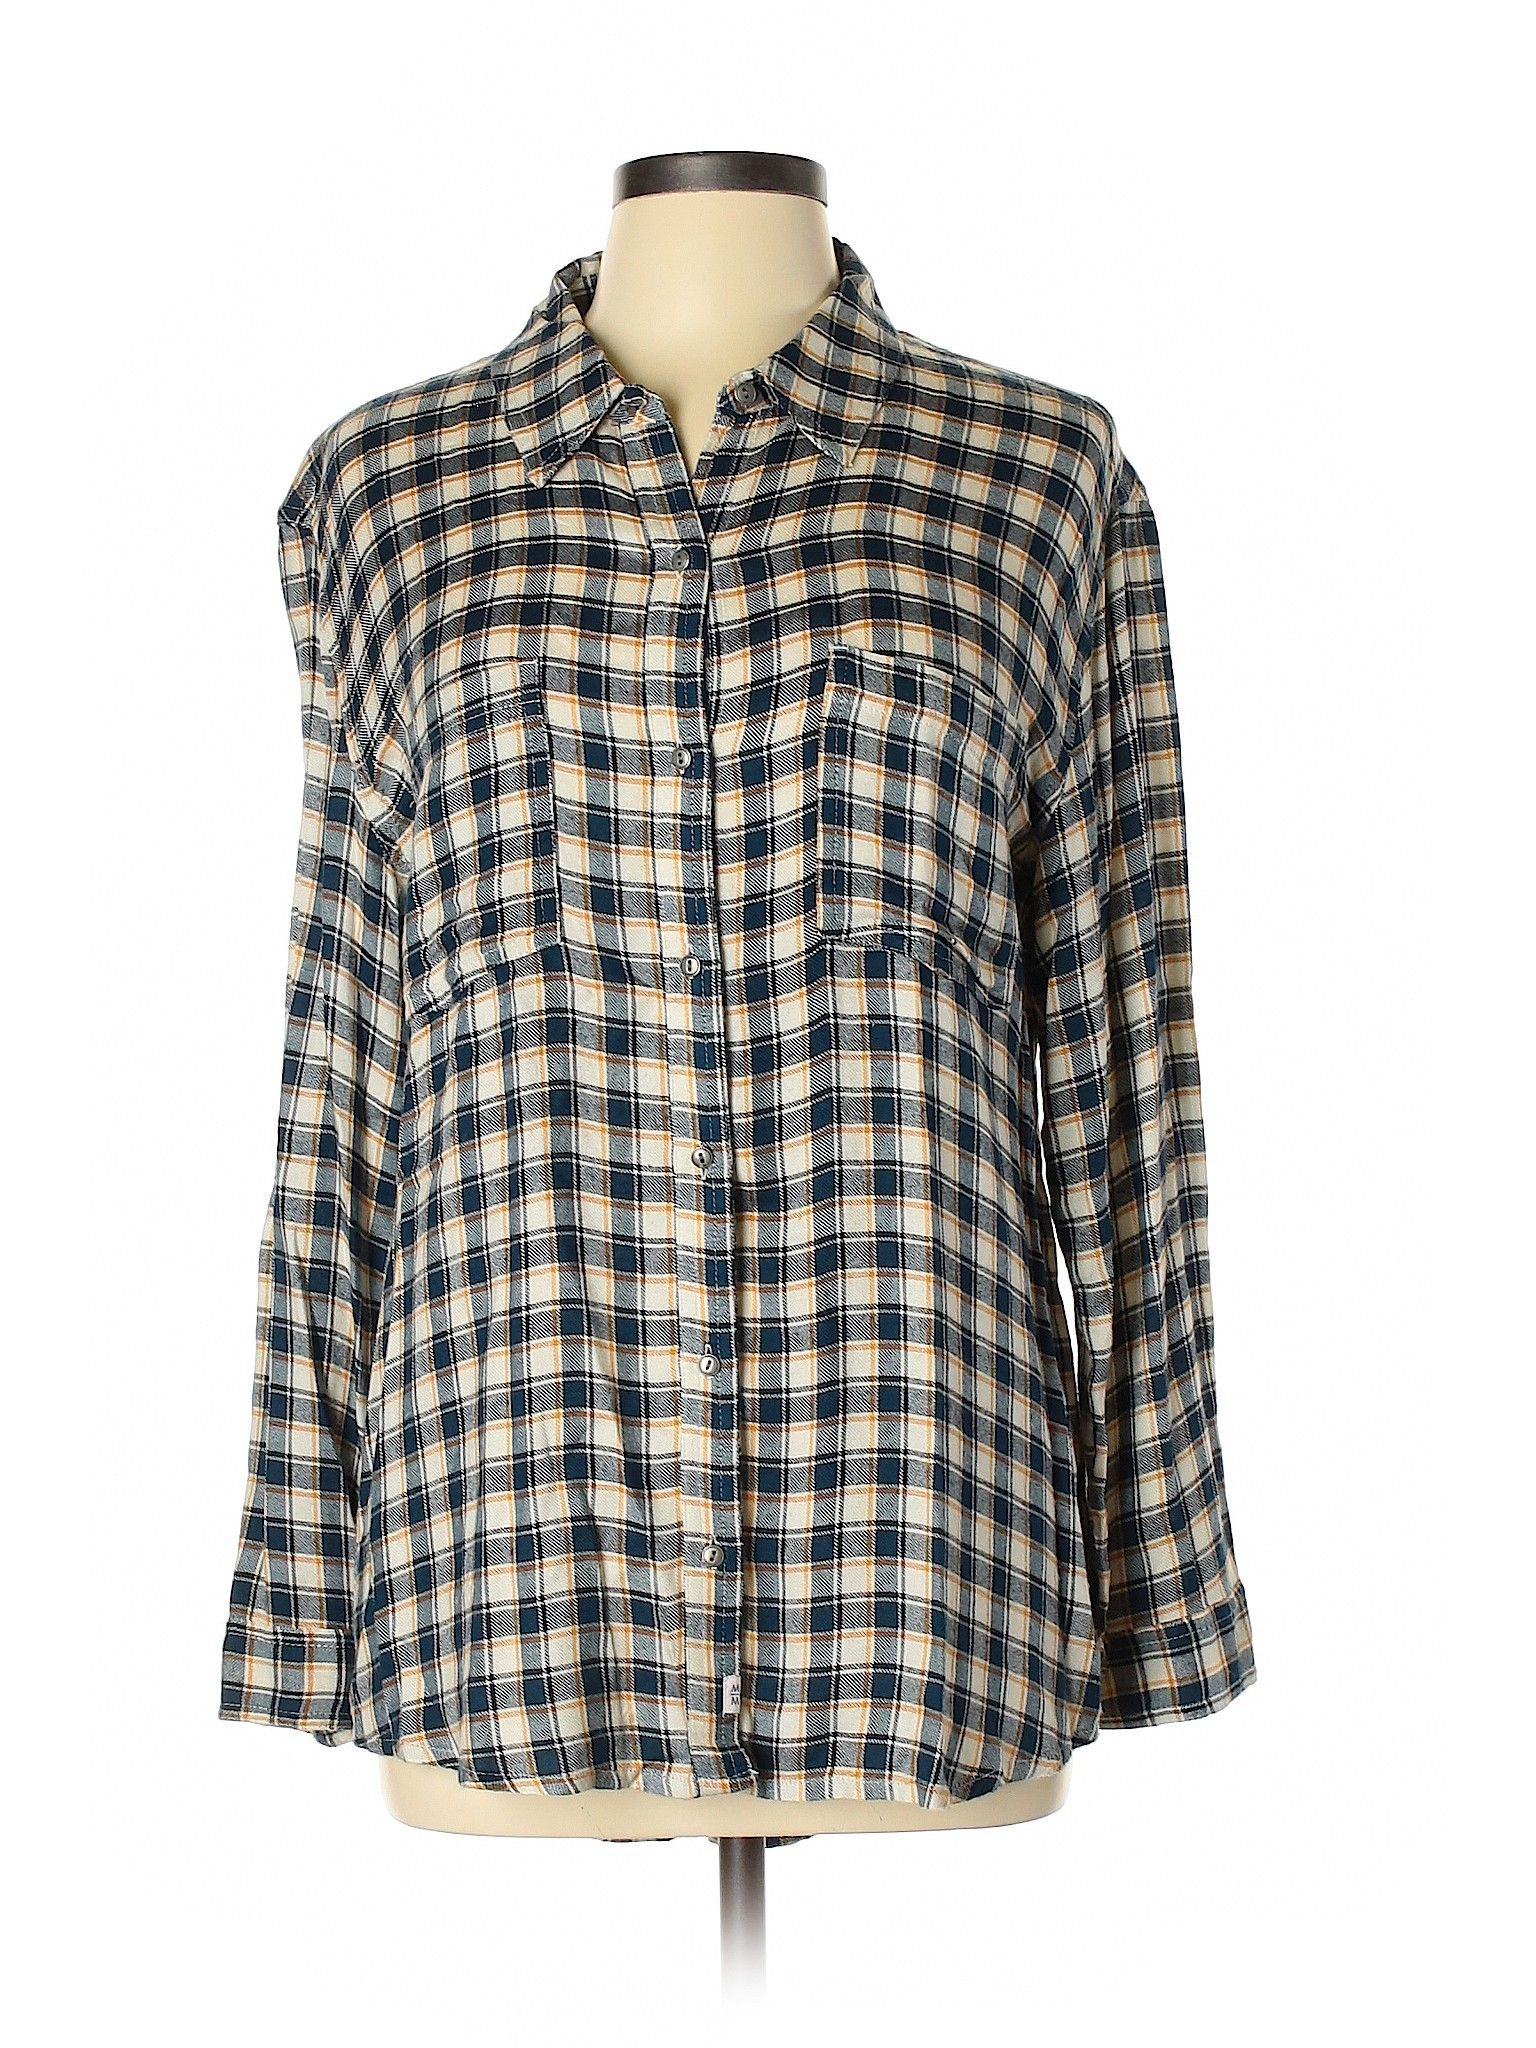 Melrose And Market Long Sleeve Button Down Shirt Ivory Plaid Women S Tops Size Medium Clothes Second Hand Clothes Clothes For Women